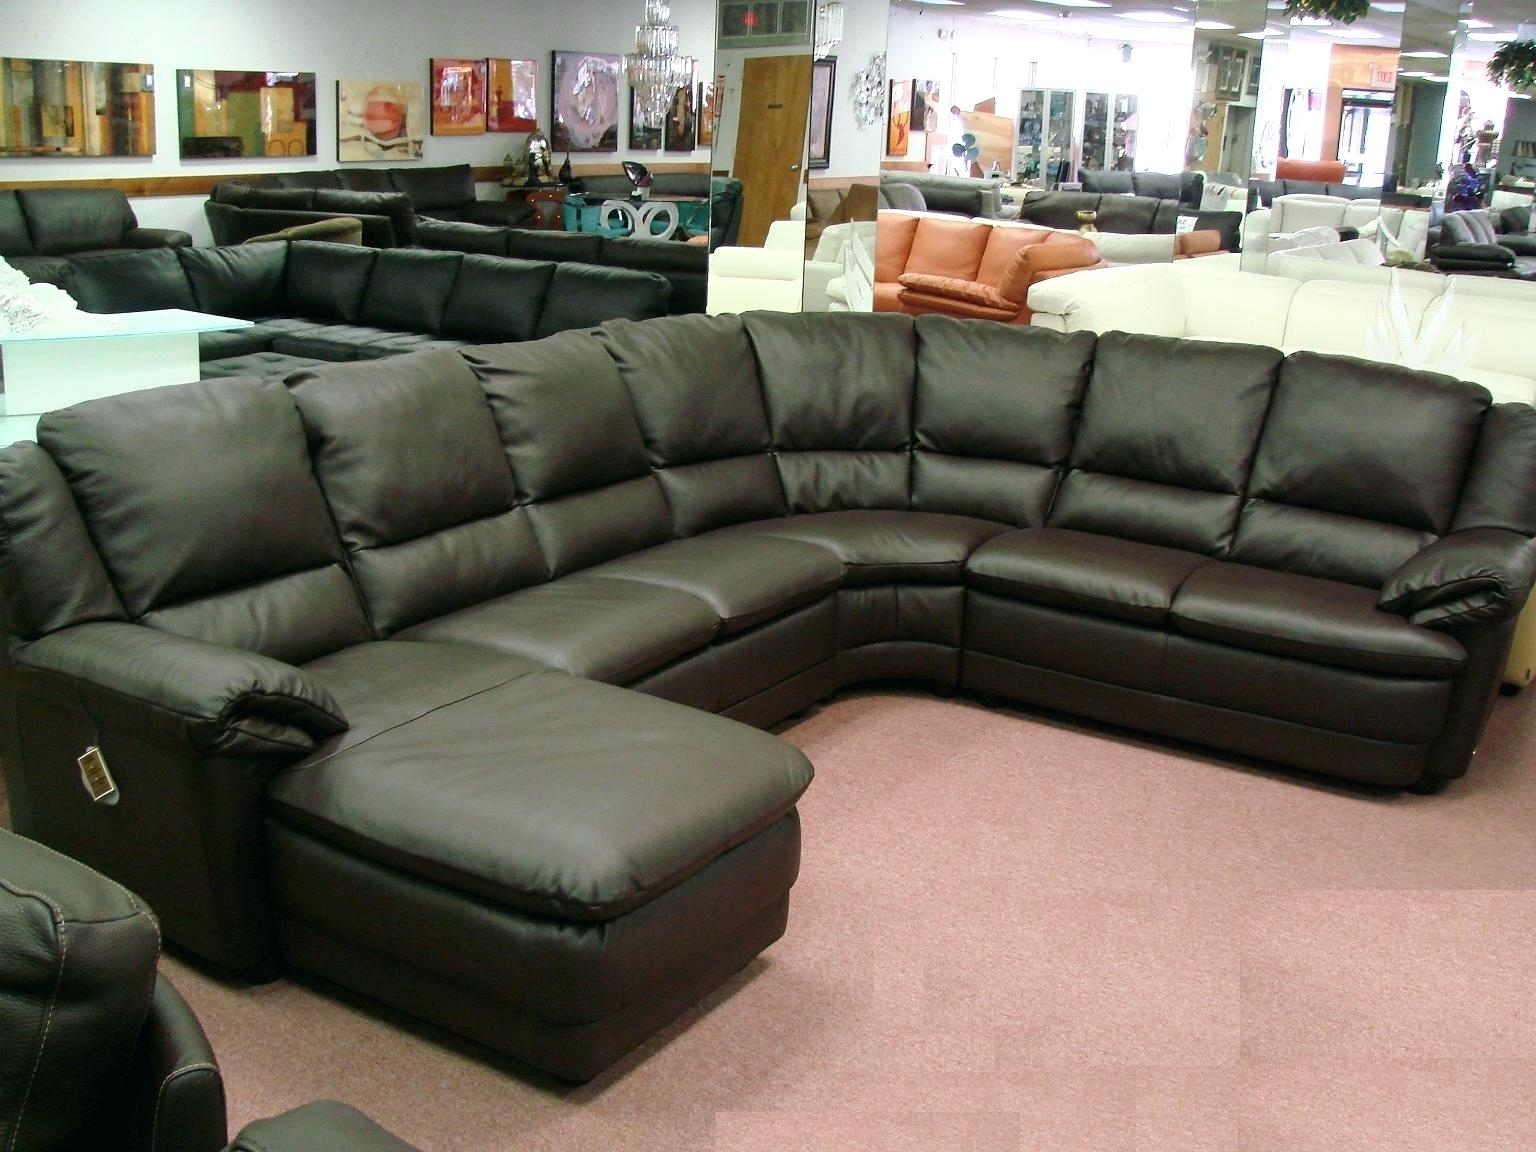 Popular Sectional Sofa Sale Sa Couches For Near Me Liquidation Toronto Inside Sectional Sofas At Calgary (View 11 of 15)